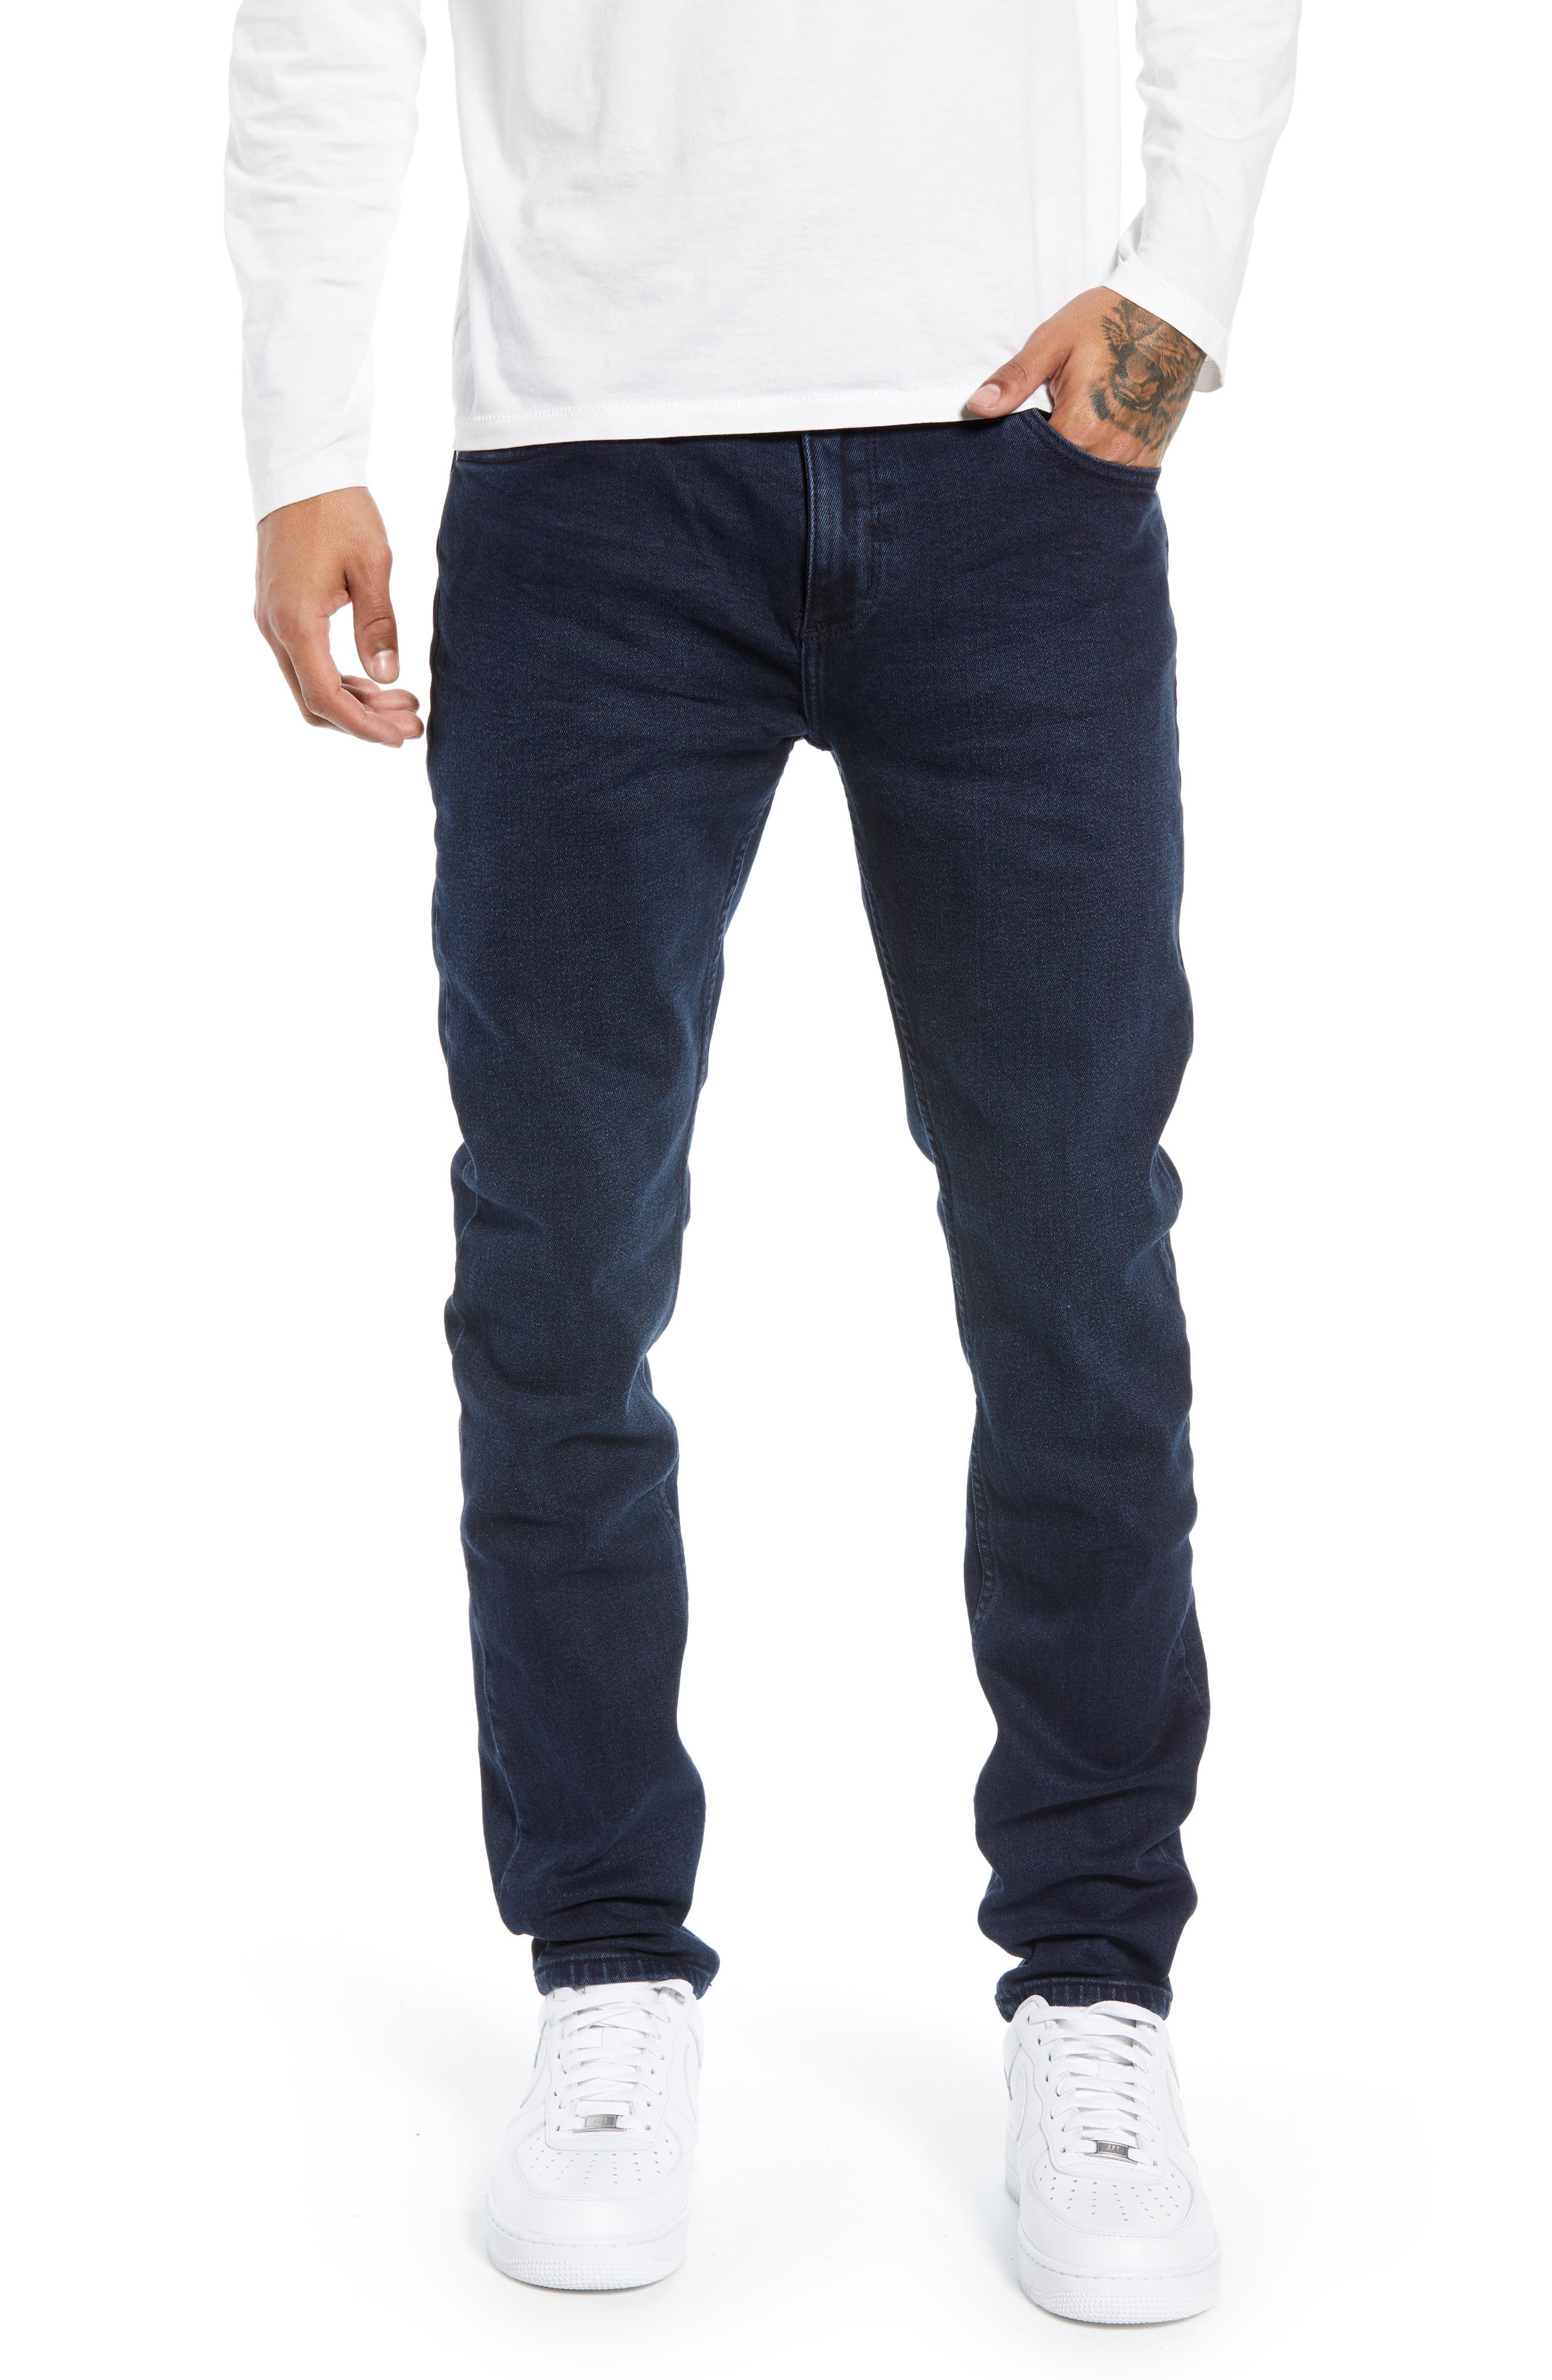 ROLLA'S Stinger Skinny Fit Jeans in Stone Free Blue